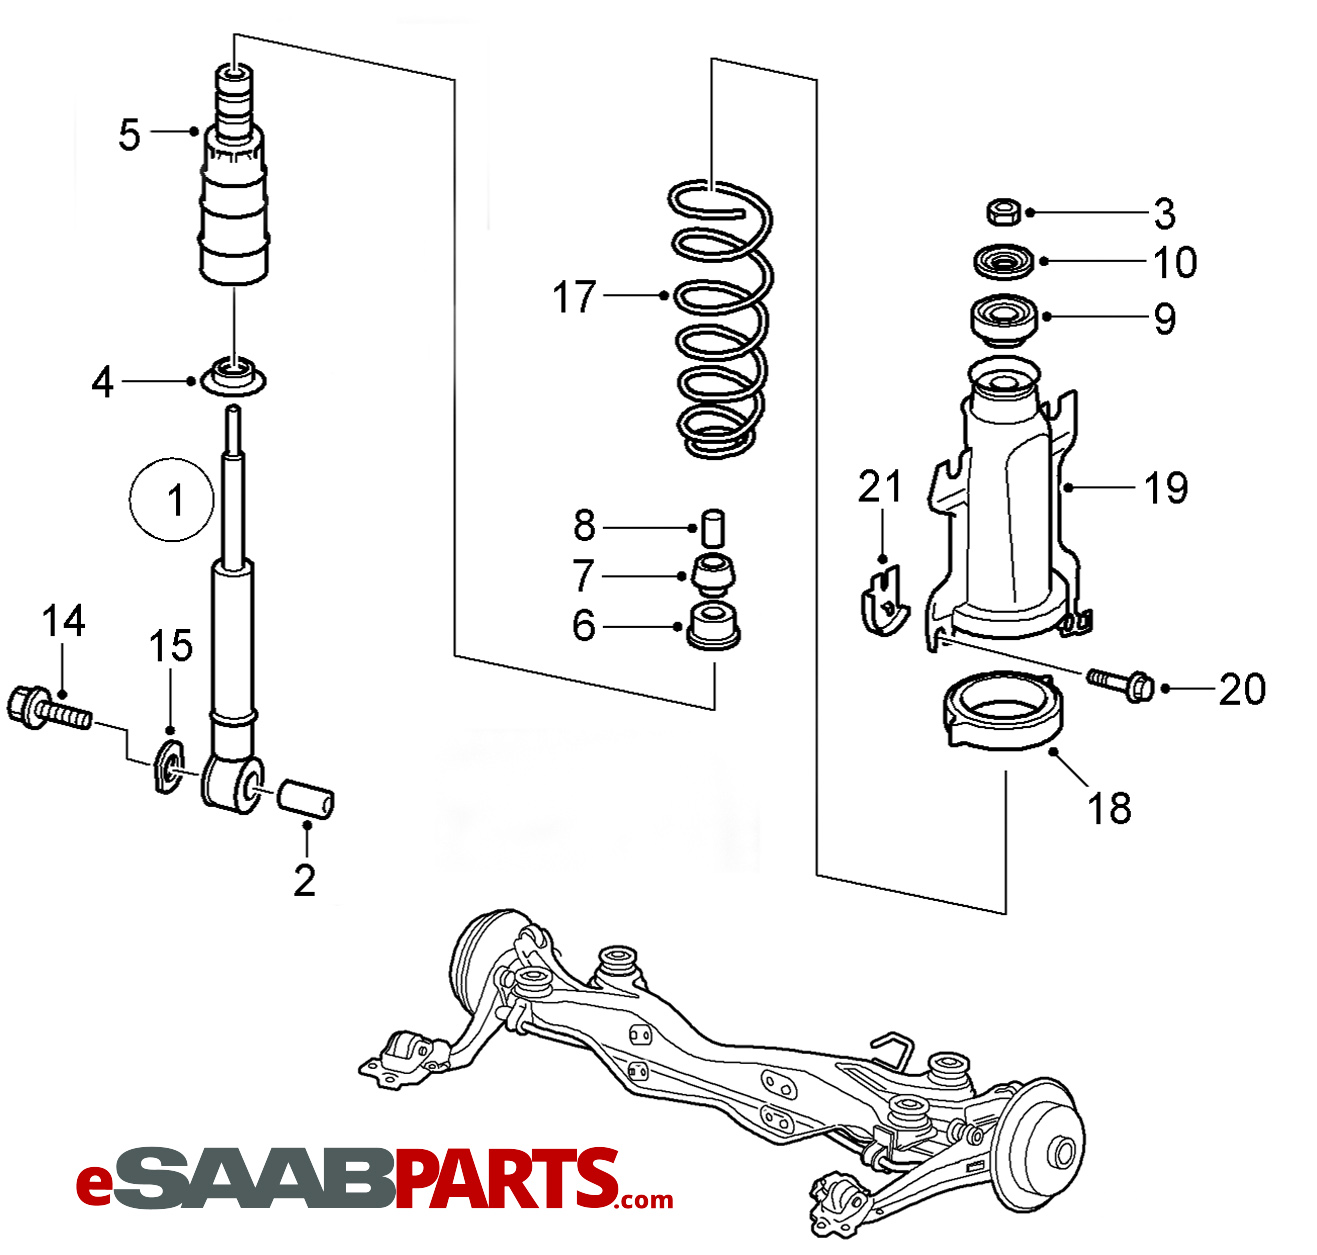 Saab engine diagram bazooka stereo wiring diagram h ton bay 87410 saab engine diagramhtml